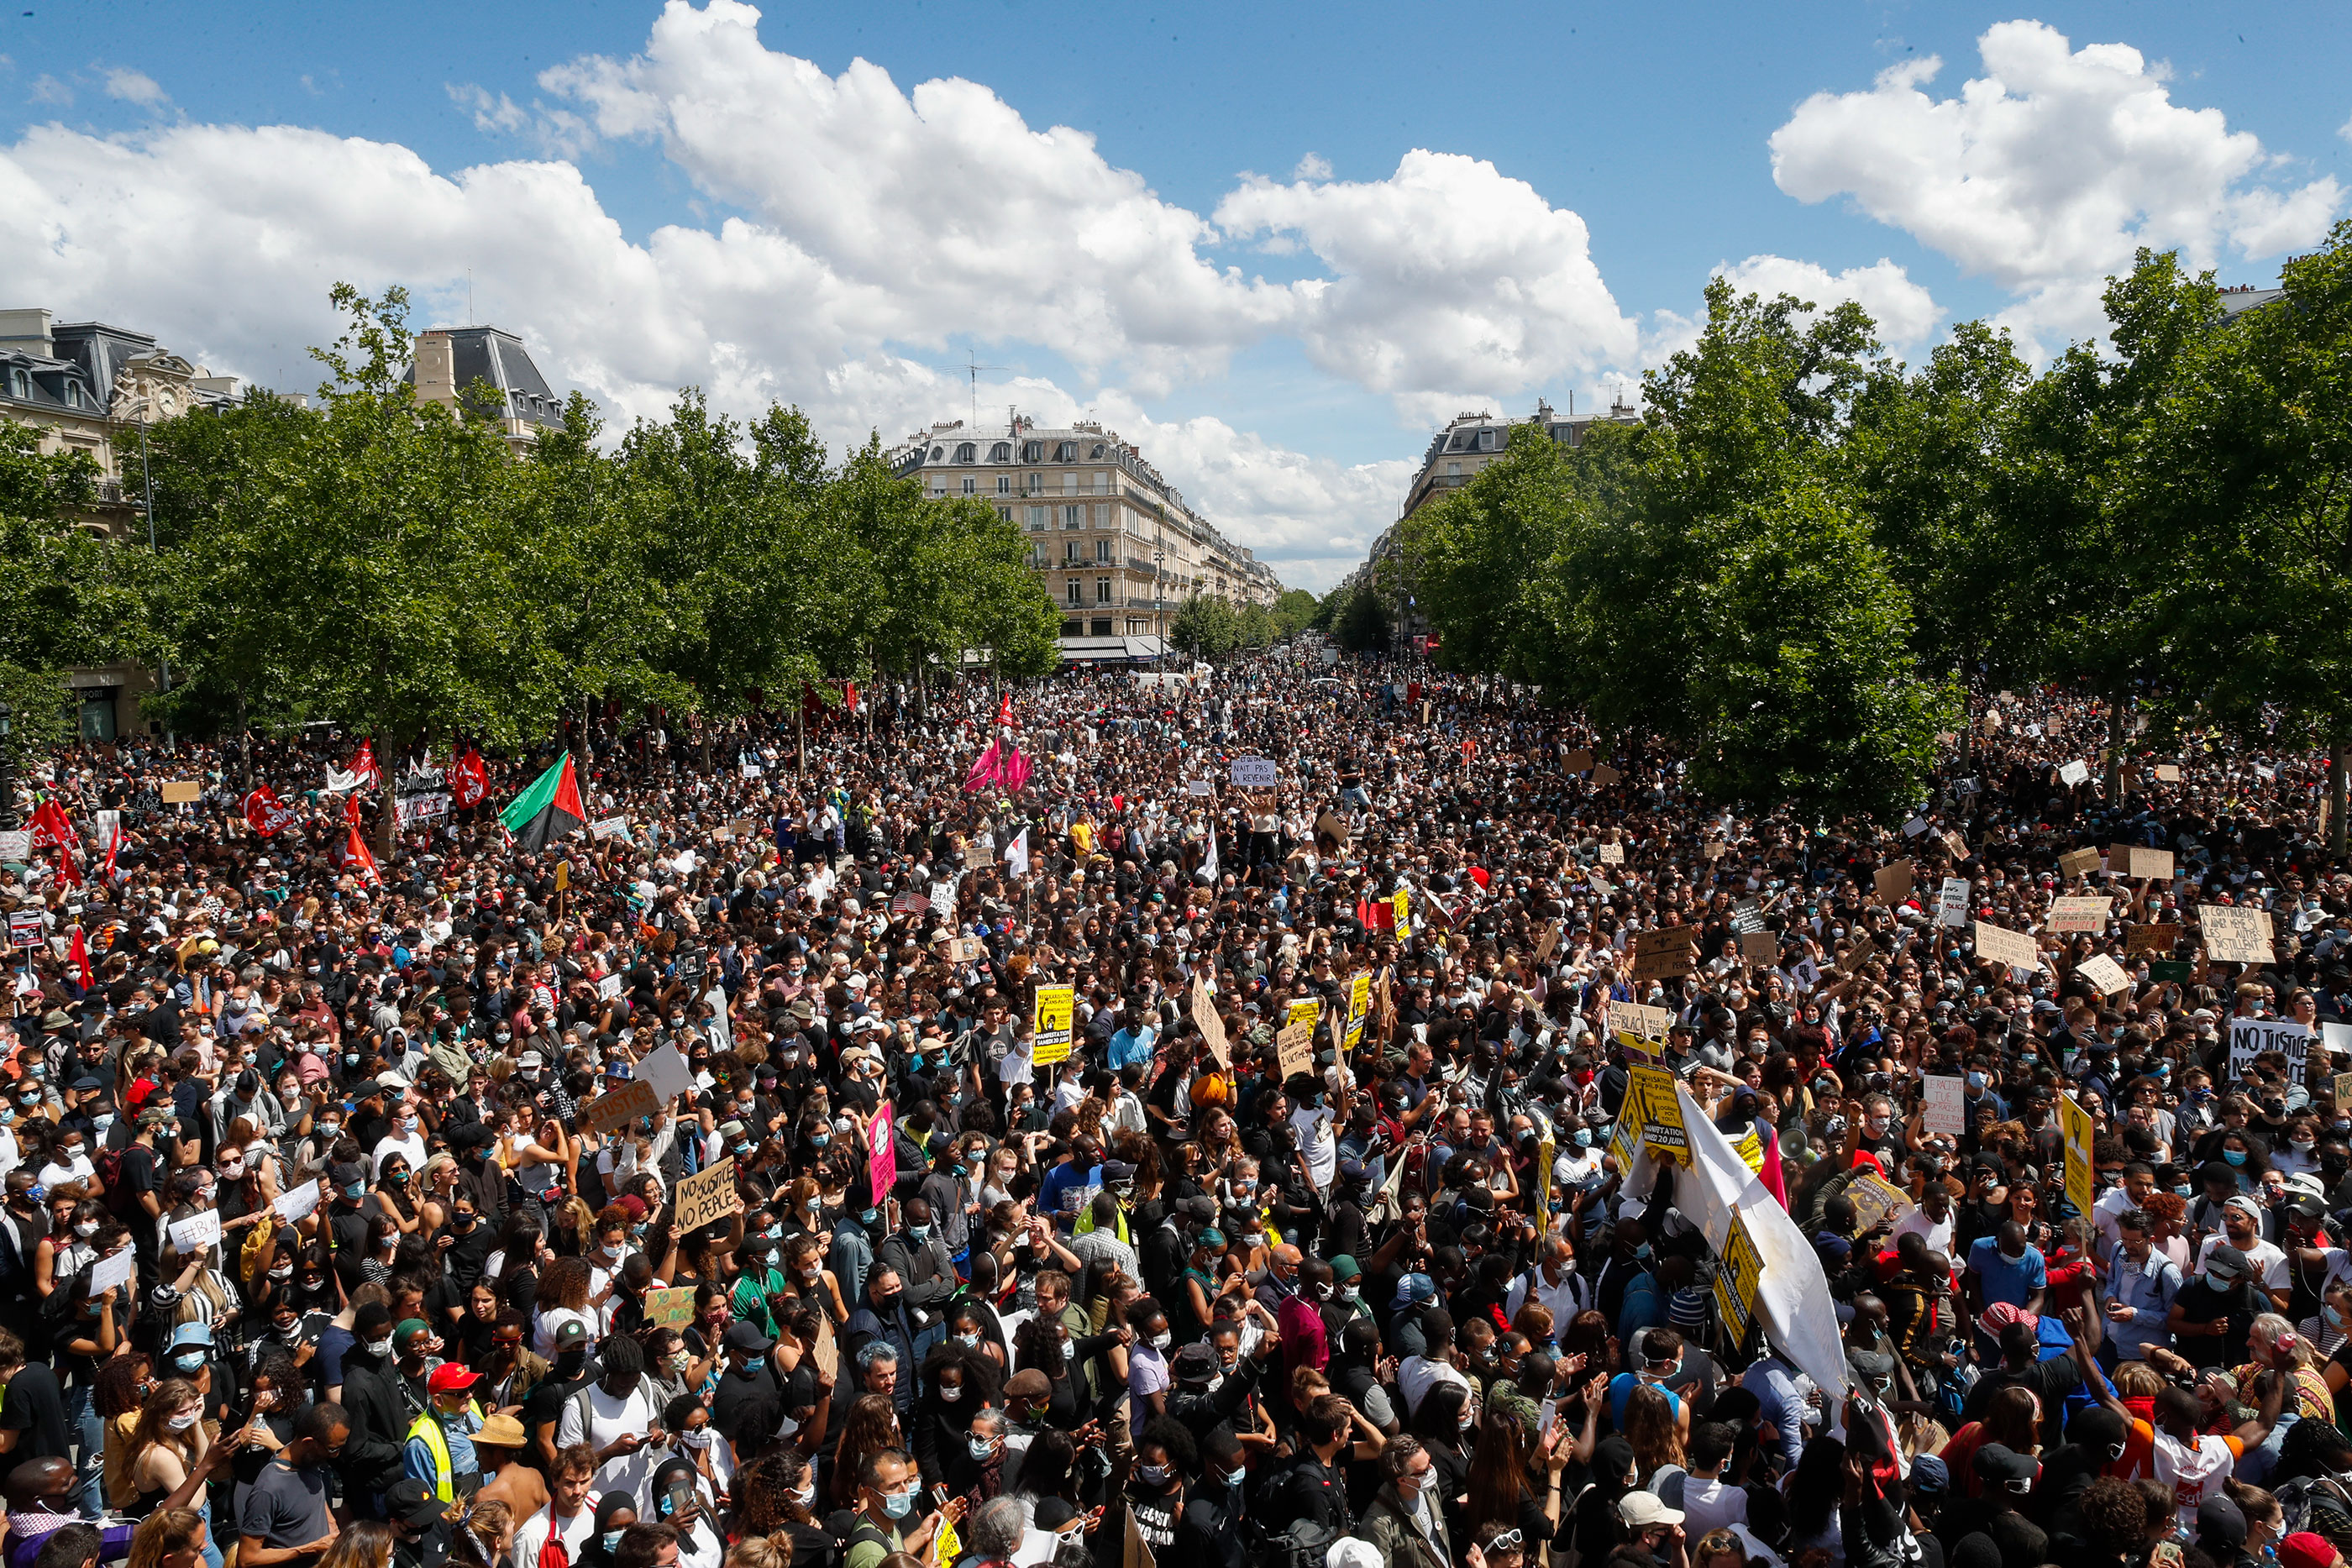 Thousands of people demonstrate against police brutality and racism in Paris, France, on June 13.